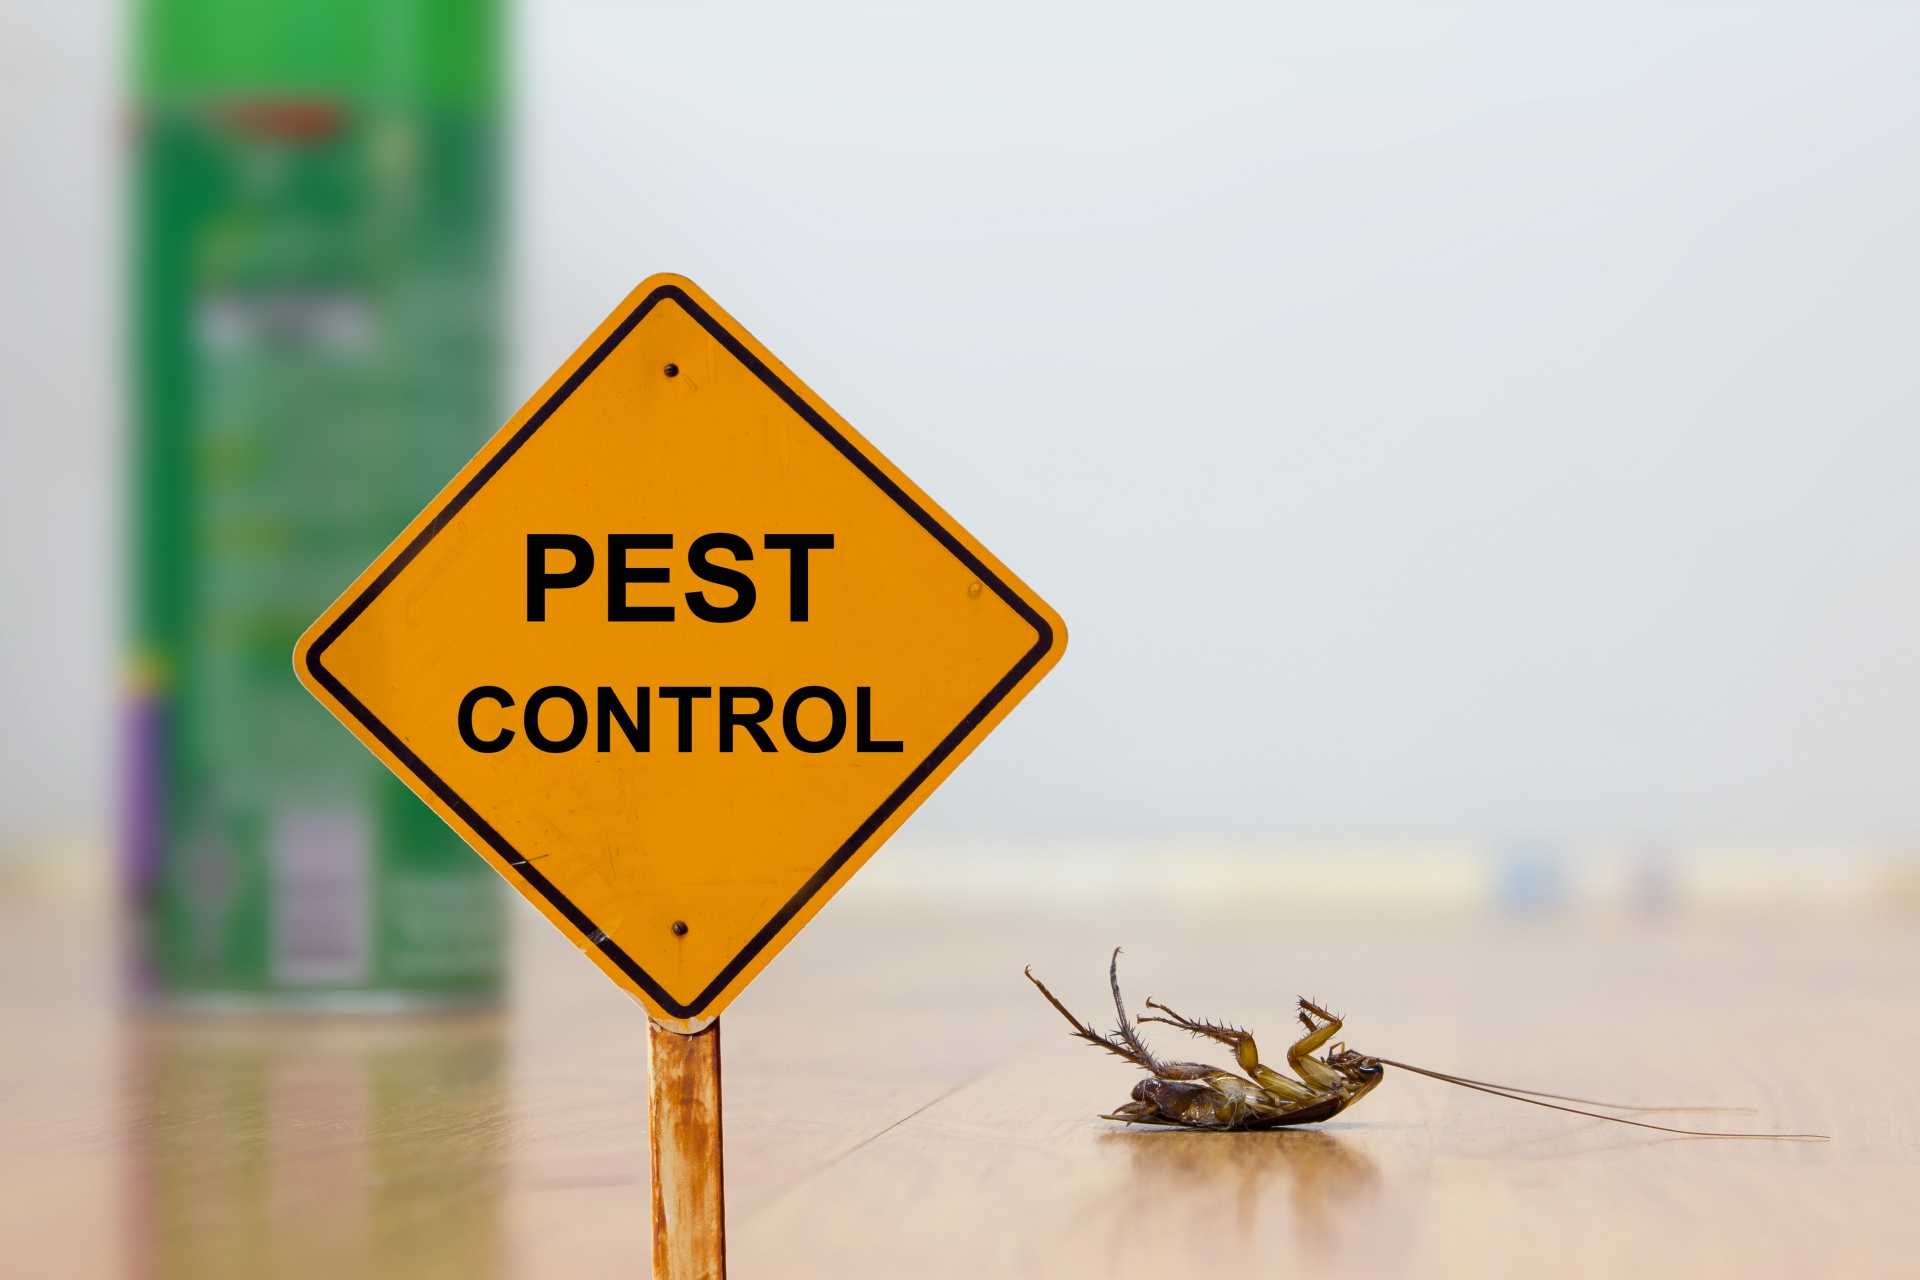 24 Hour Pest Control, Pest Control in Stratford, West Ham, E15. Call Now 020 8166 9746